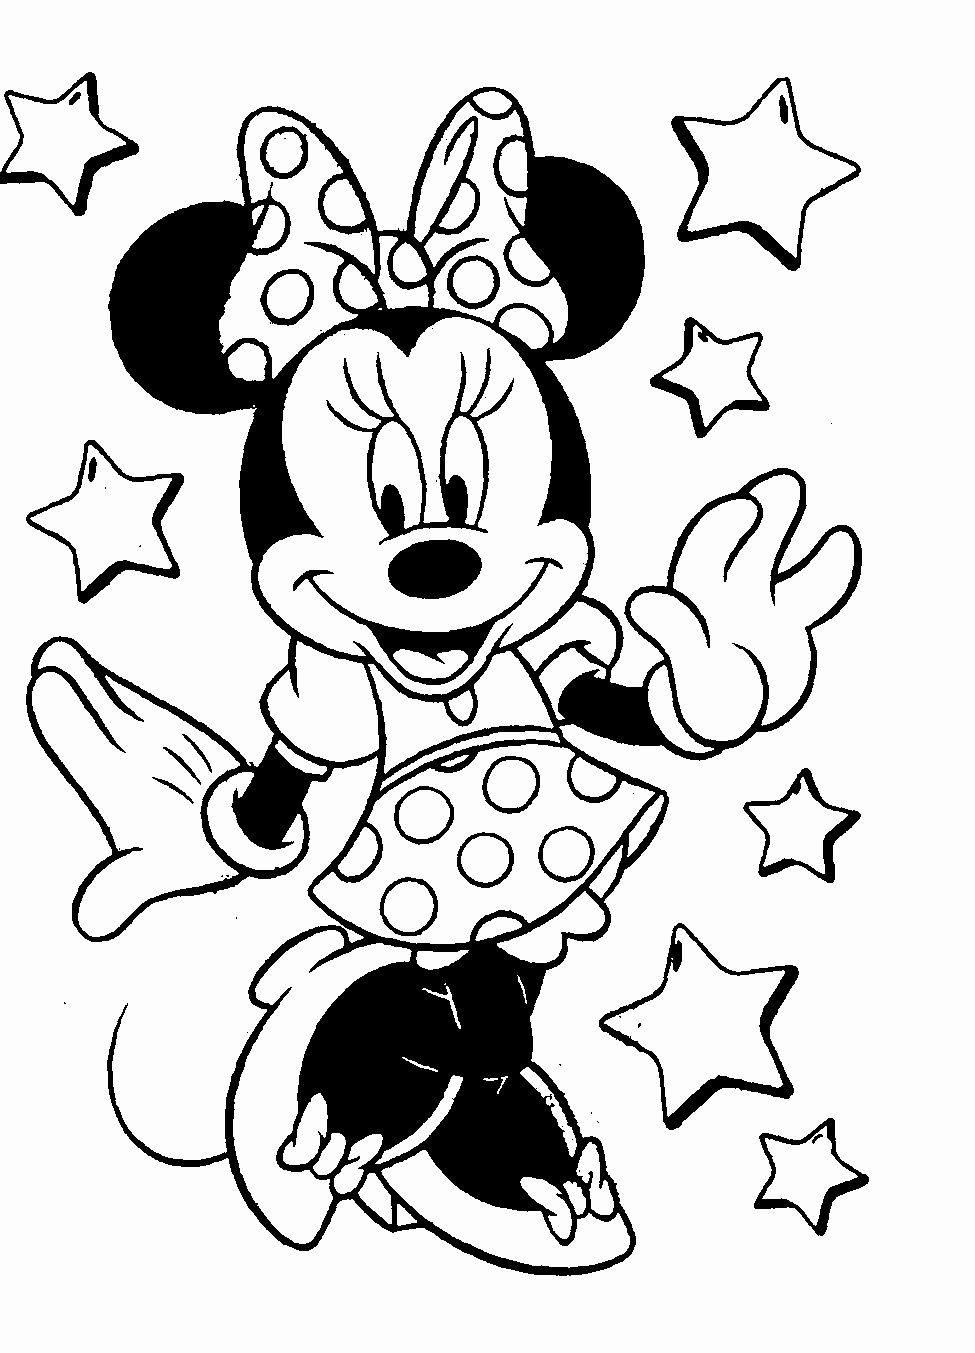 Pin By Sh Iruna On Coloring Pages Mickey Mouse Coloring Pages Free Disney Coloring Pages Minnie Mouse Coloring Pages